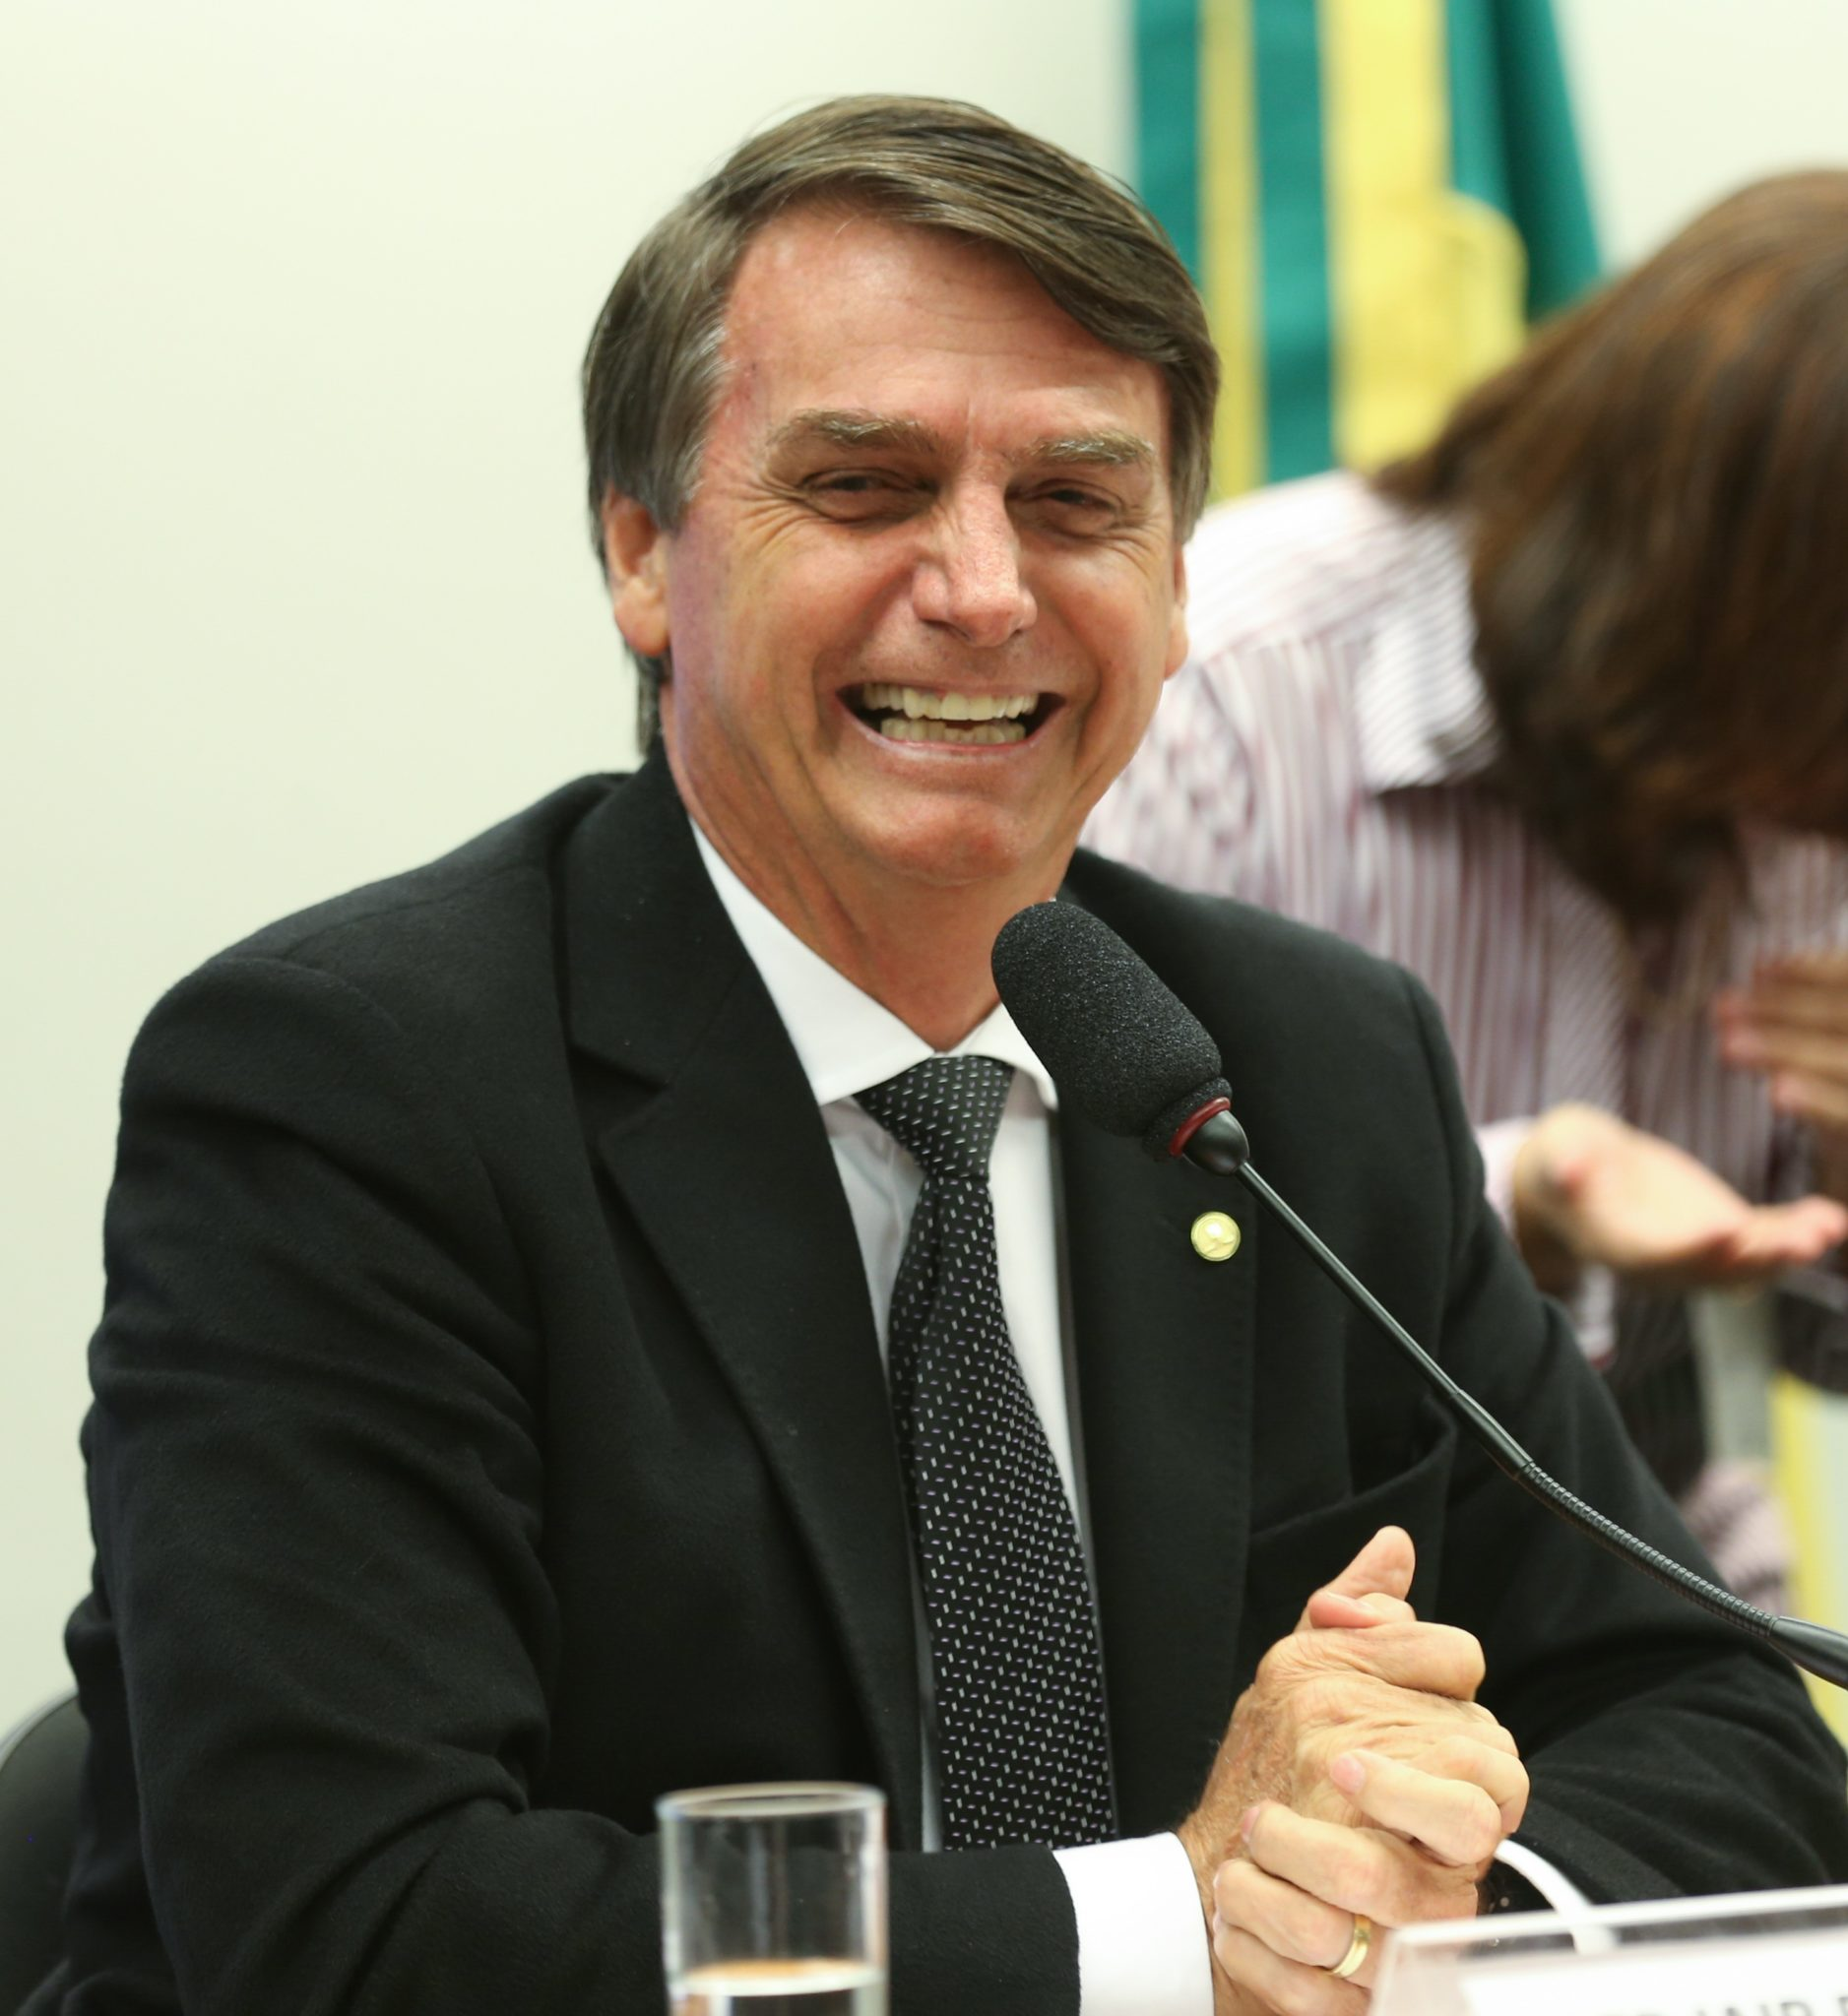 Why Bolsonaro's comments matter